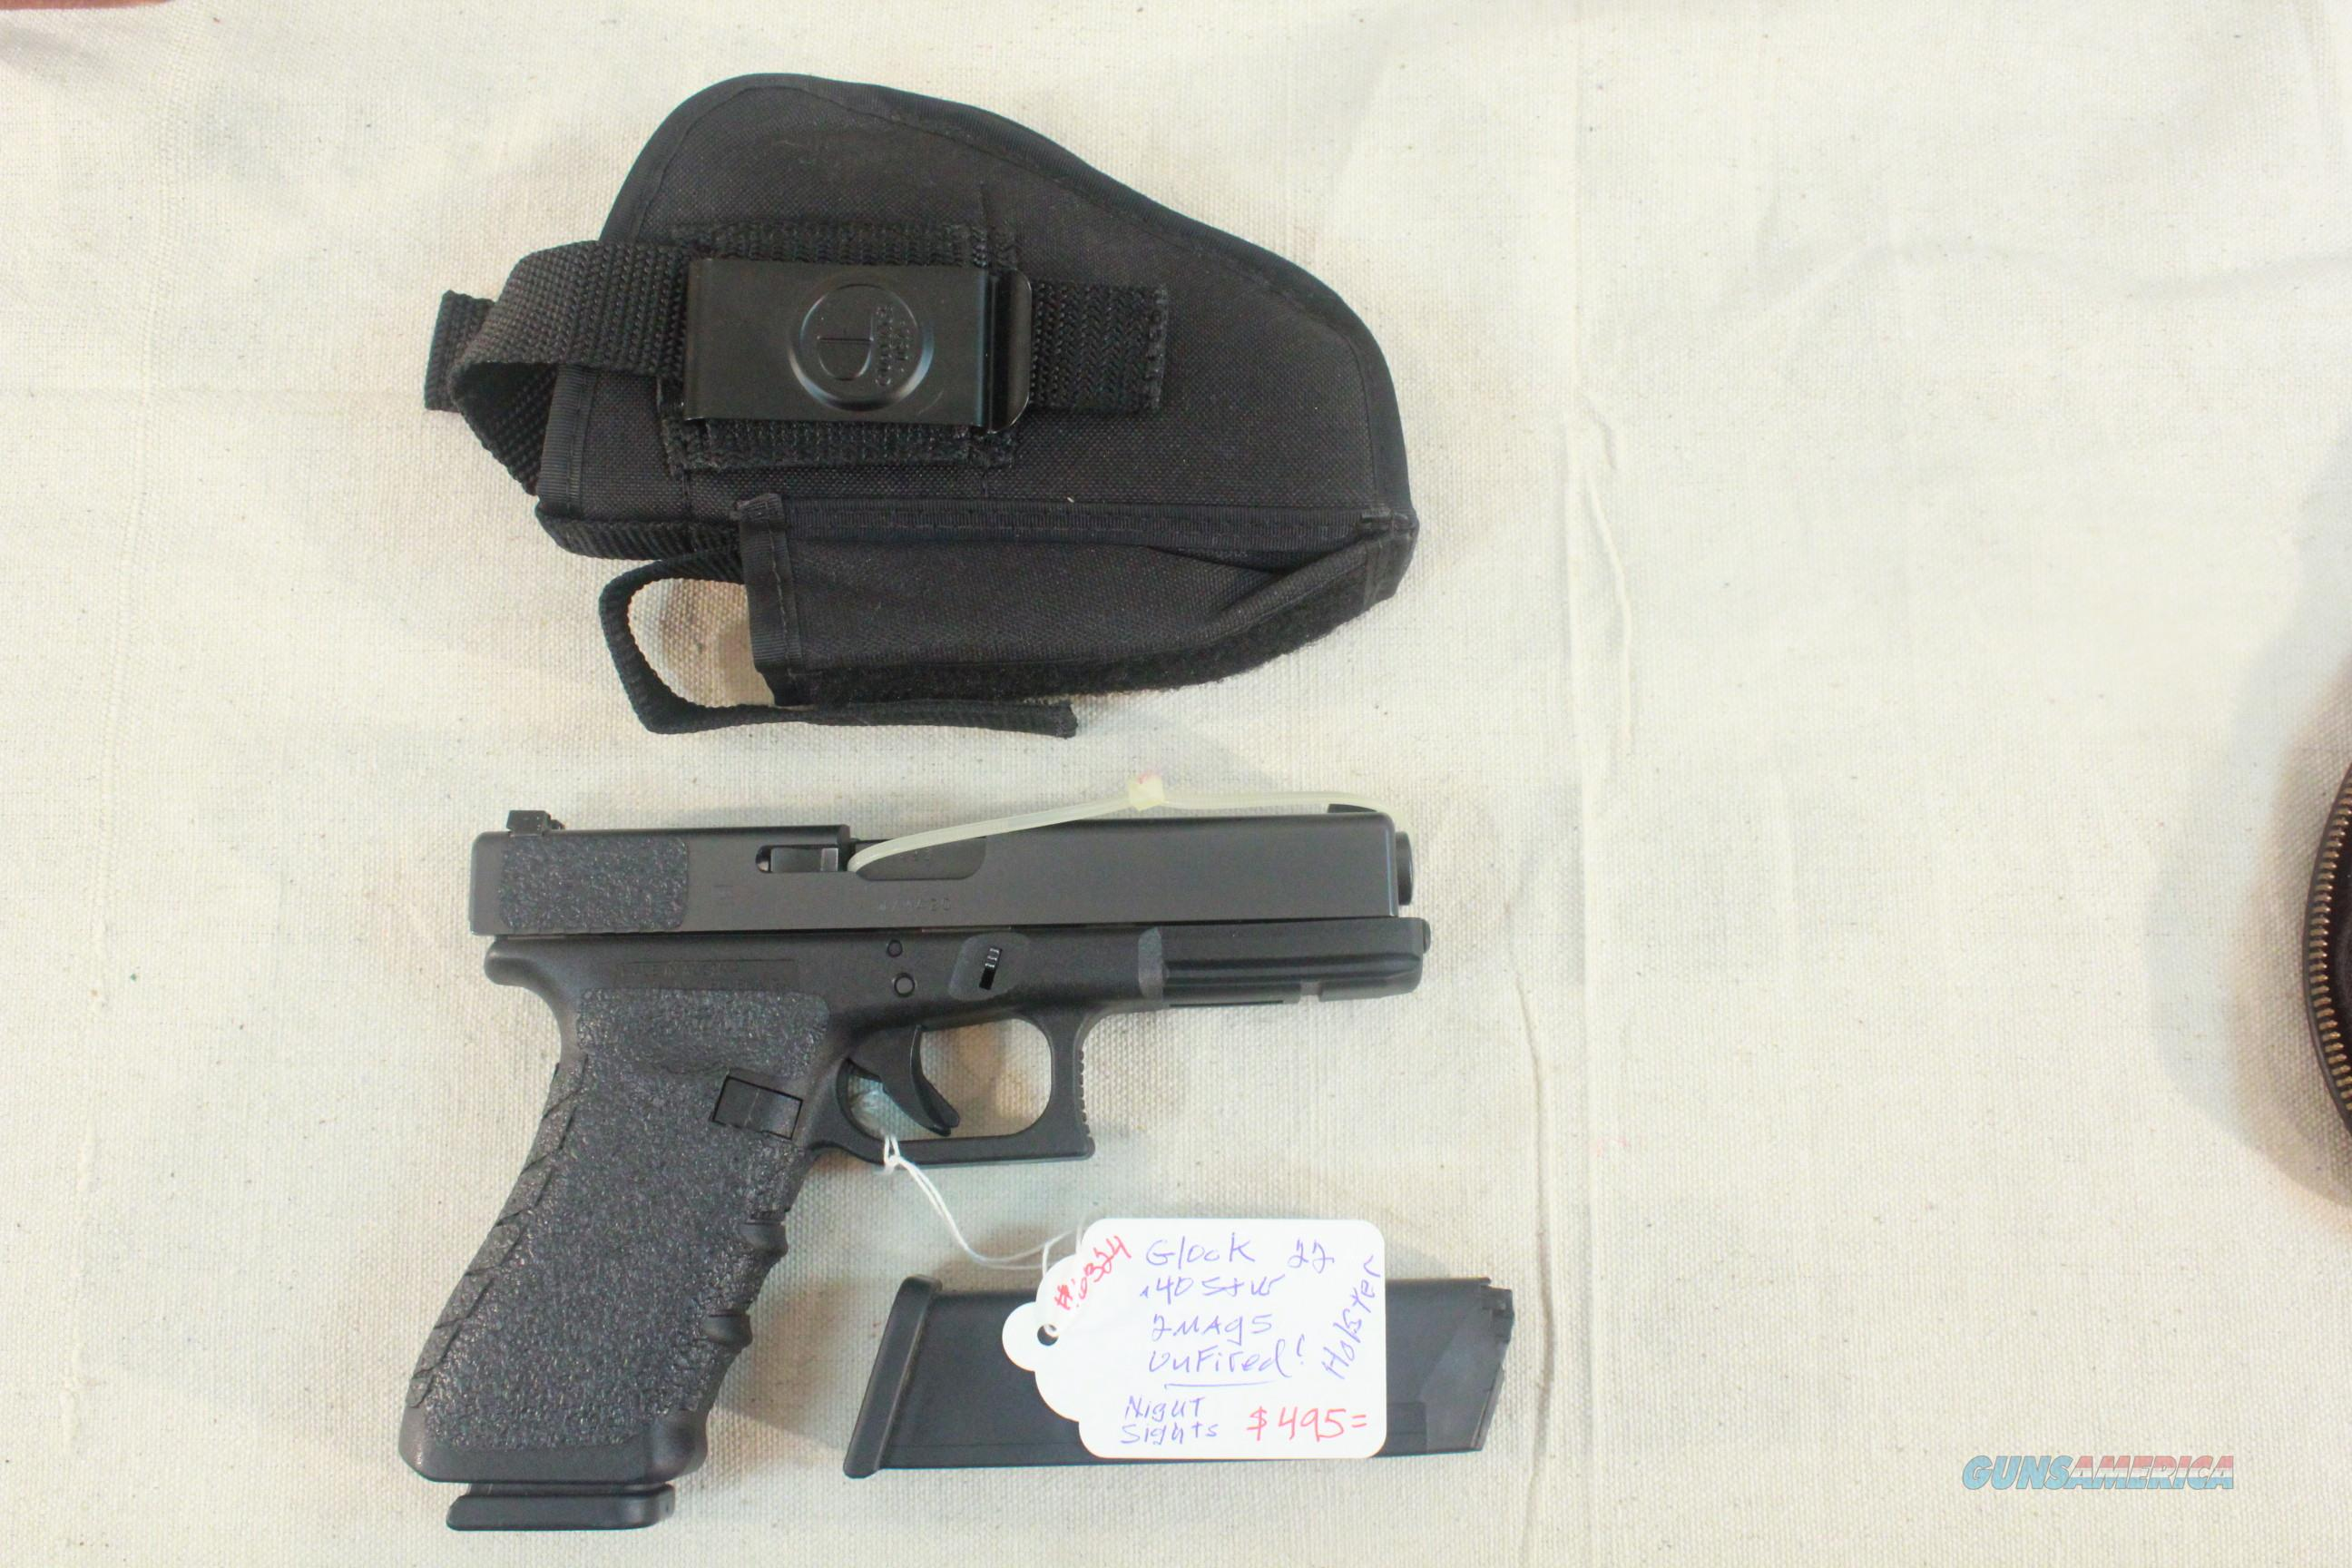 Glock Model 22 .40 S&W with 2 magazines and holster.  Guns > Pistols > Glock Pistols > 22